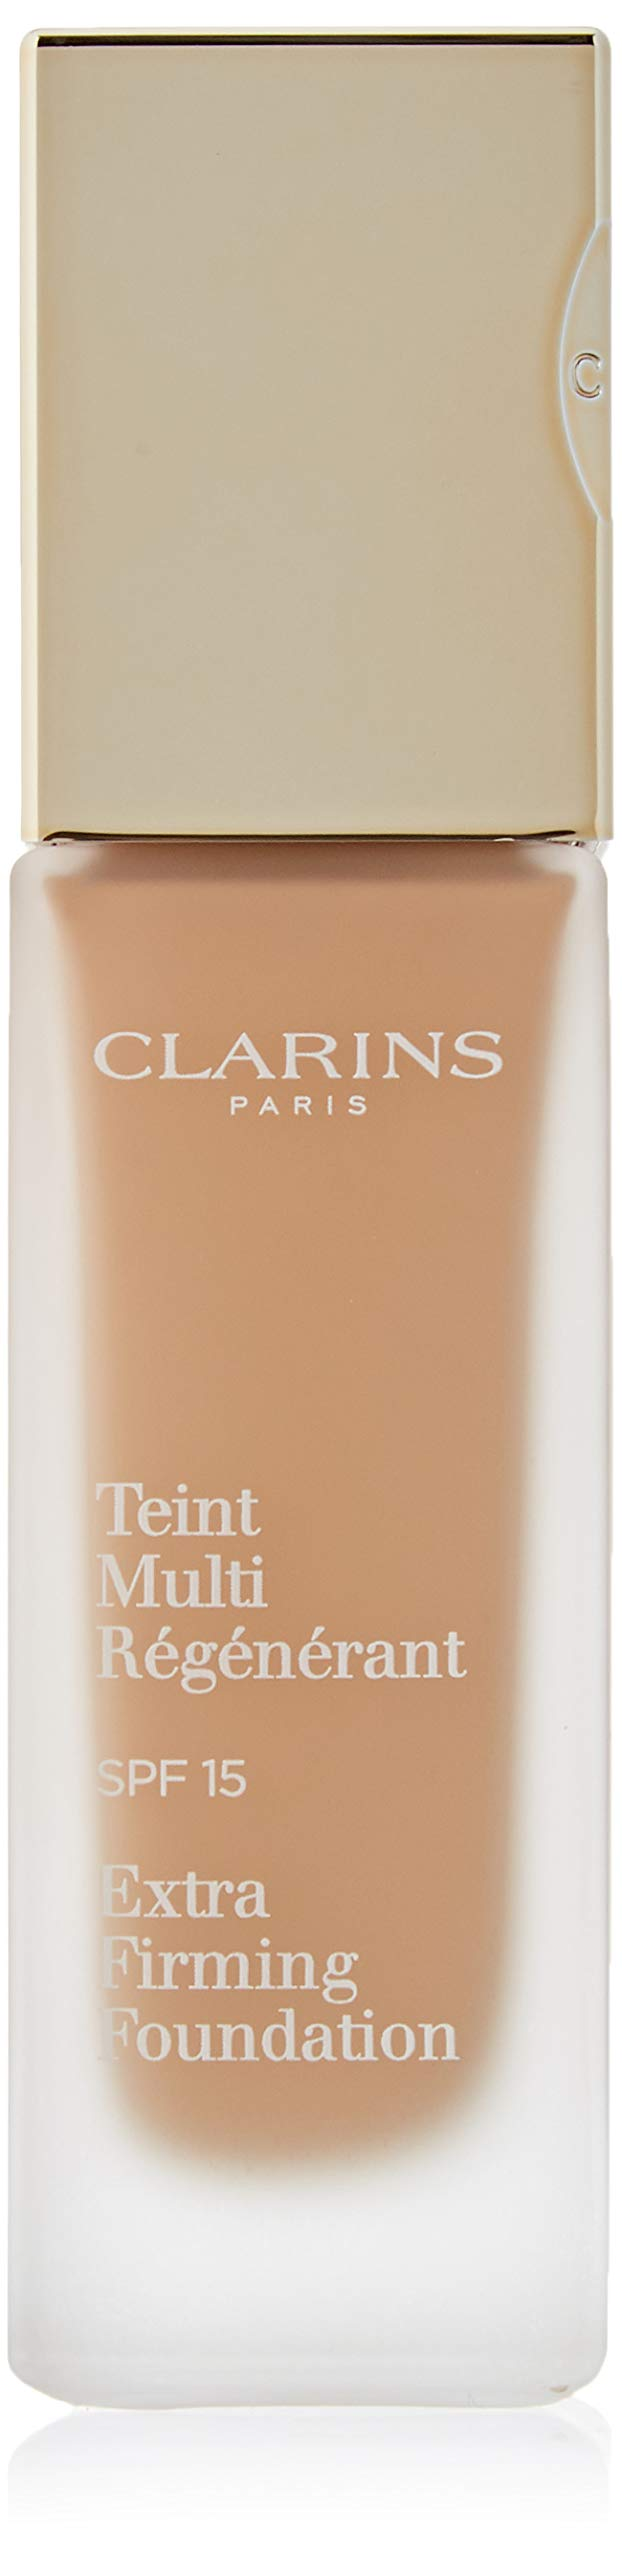 Clarins Extra Firming Foundation with SPF 15, 112 Amber, 1.1 Ounce